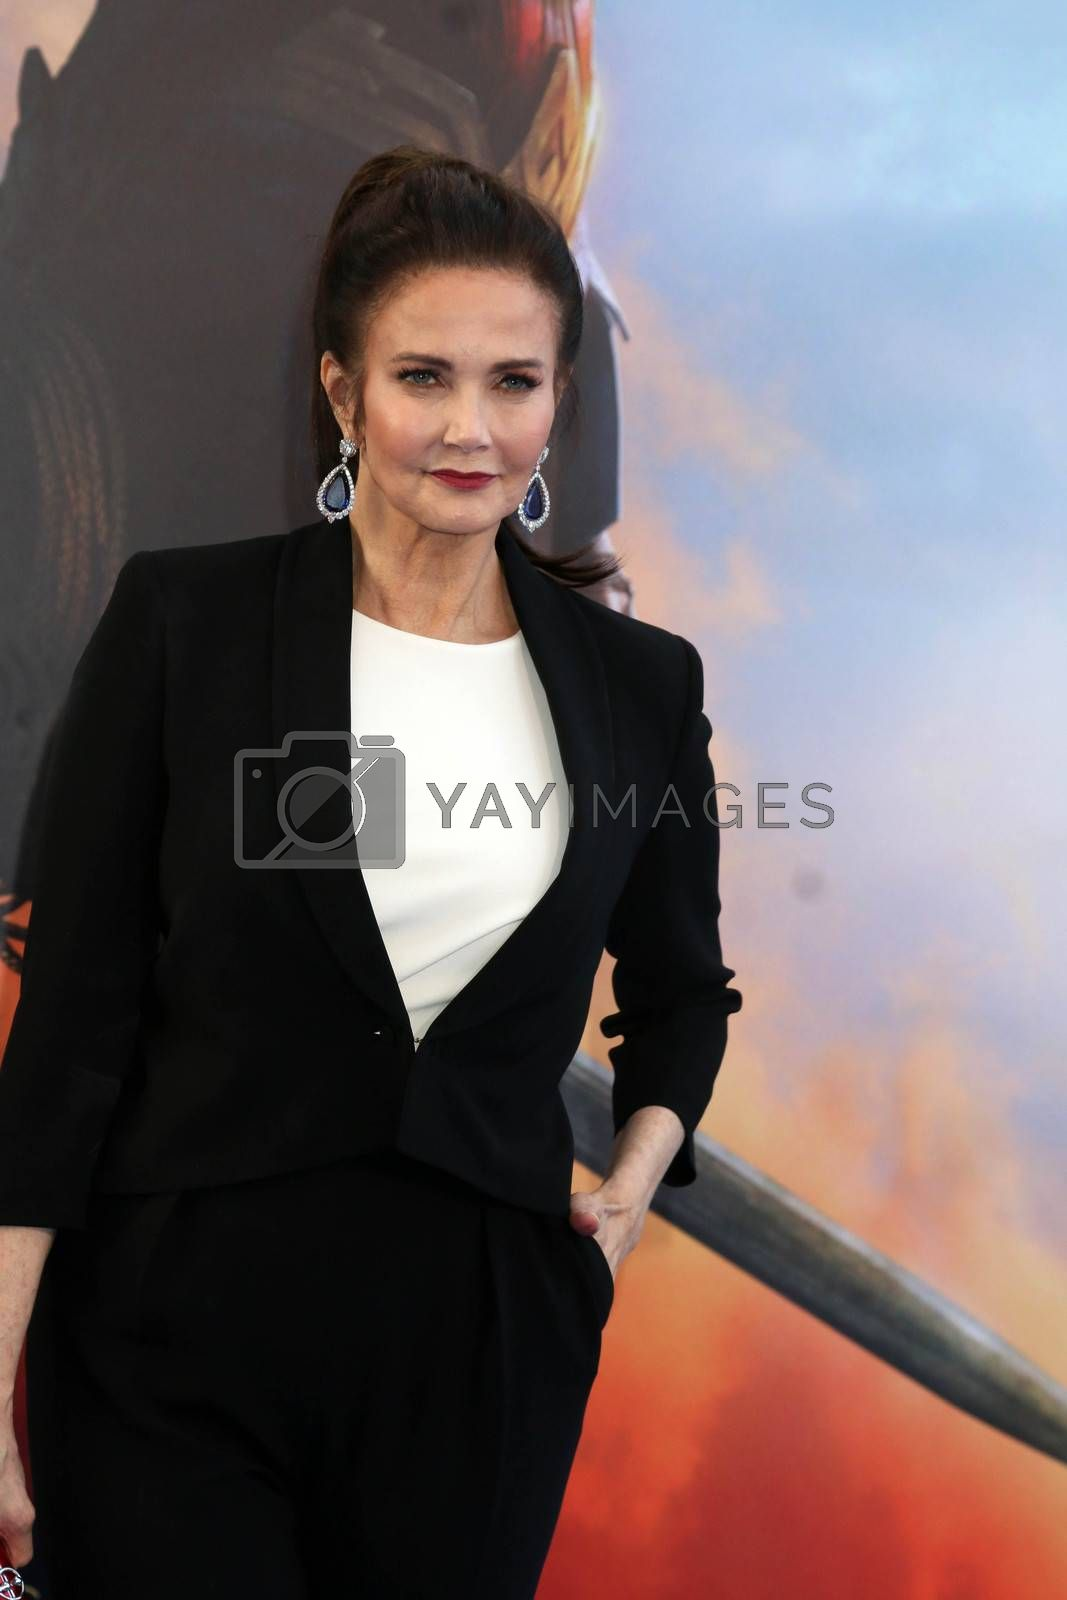 """Lynda Carter at the """"Wonder Woman"""" Premiere, Pantages, Hollywood, CA 05-25-17/ImageCollect by ImageCollect"""